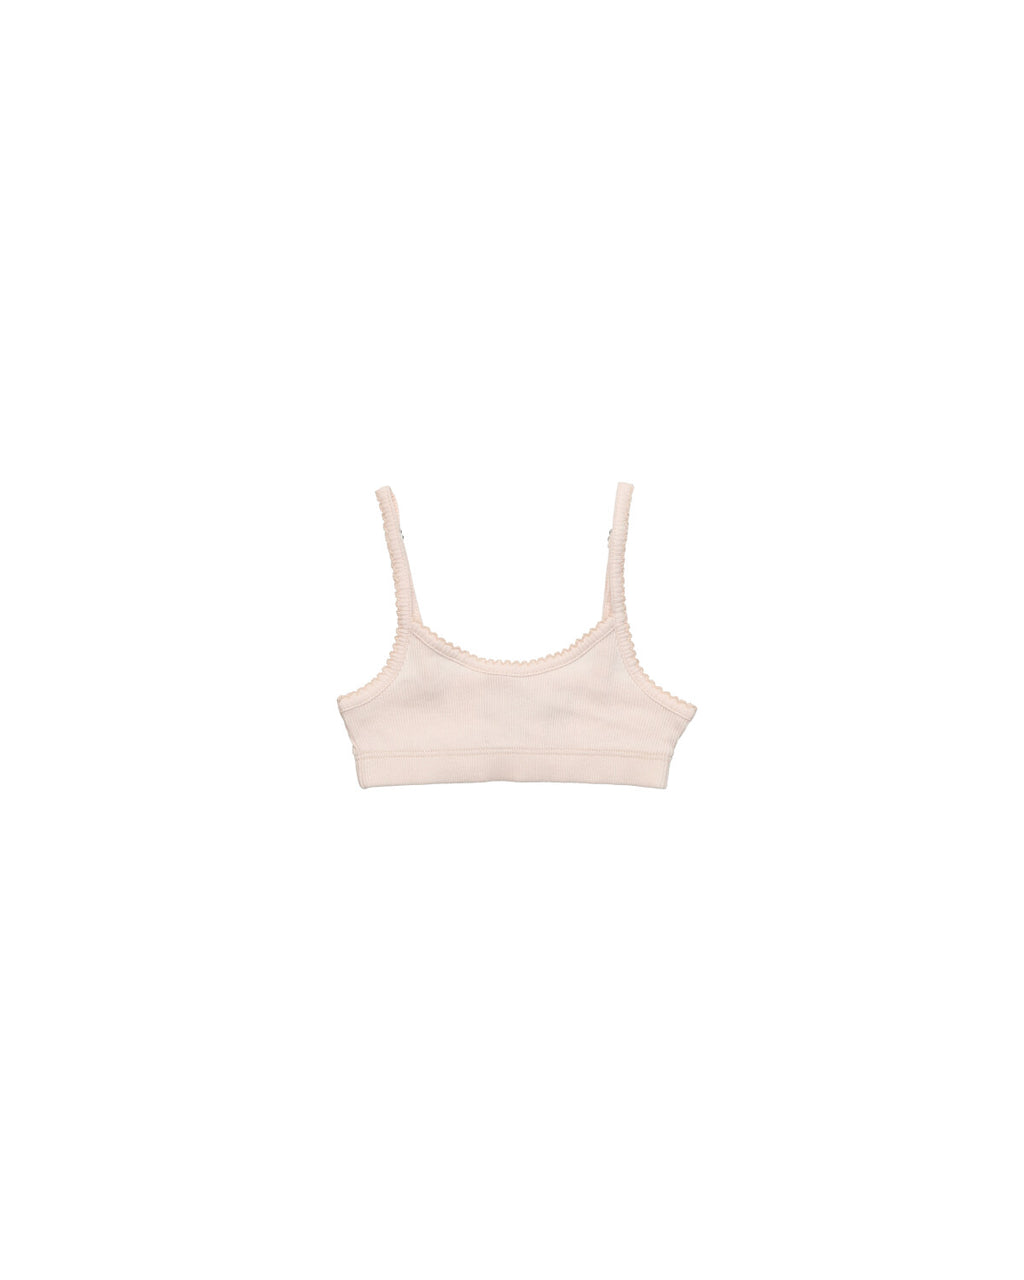 The New Society Mar Top - Blush